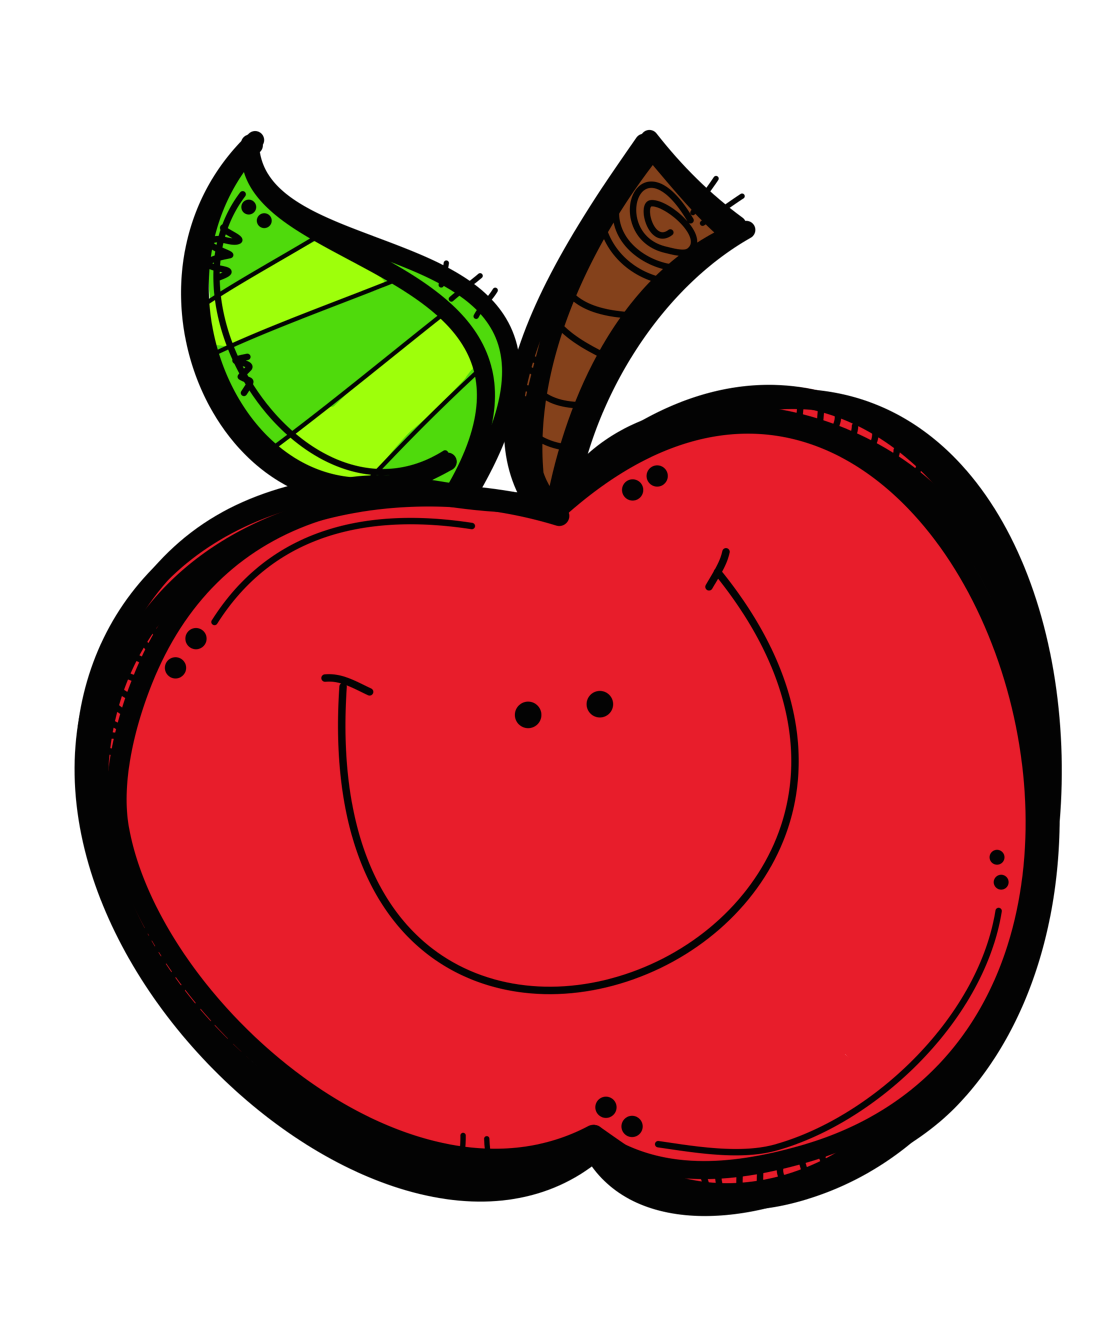 1 teacher apple clipart picture transparent download 1 teacher apple clipart - ClipartFest picture transparent download